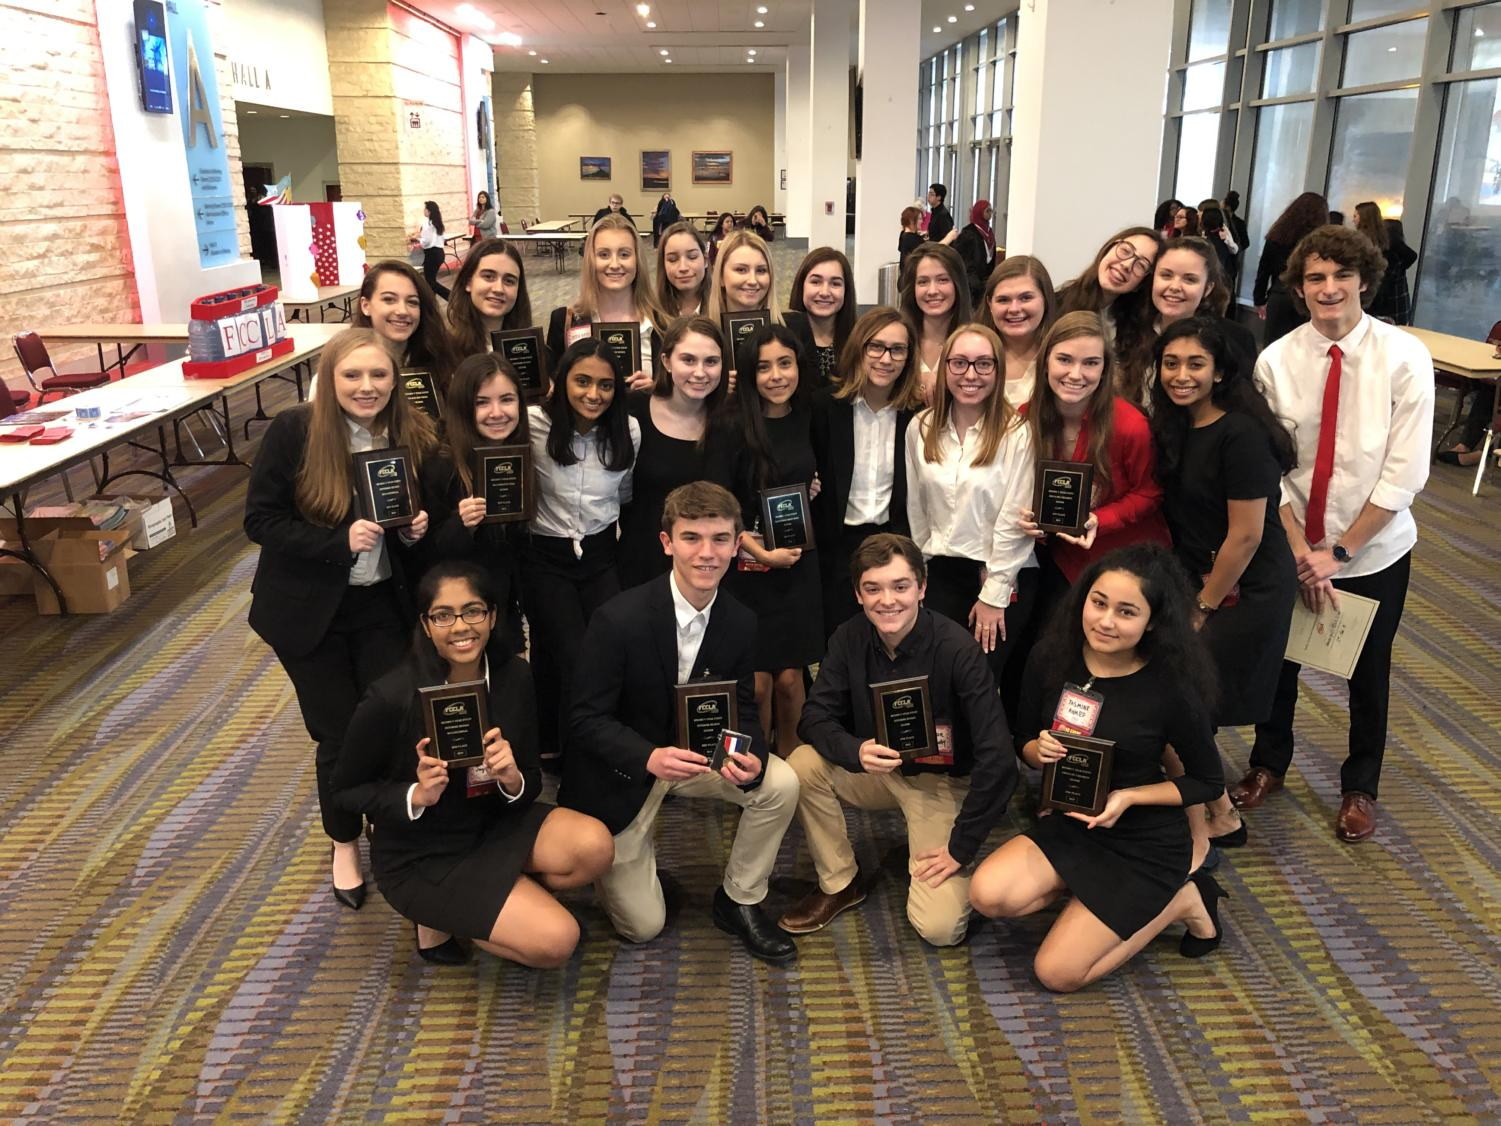 FCCLA competitors show off their awards.